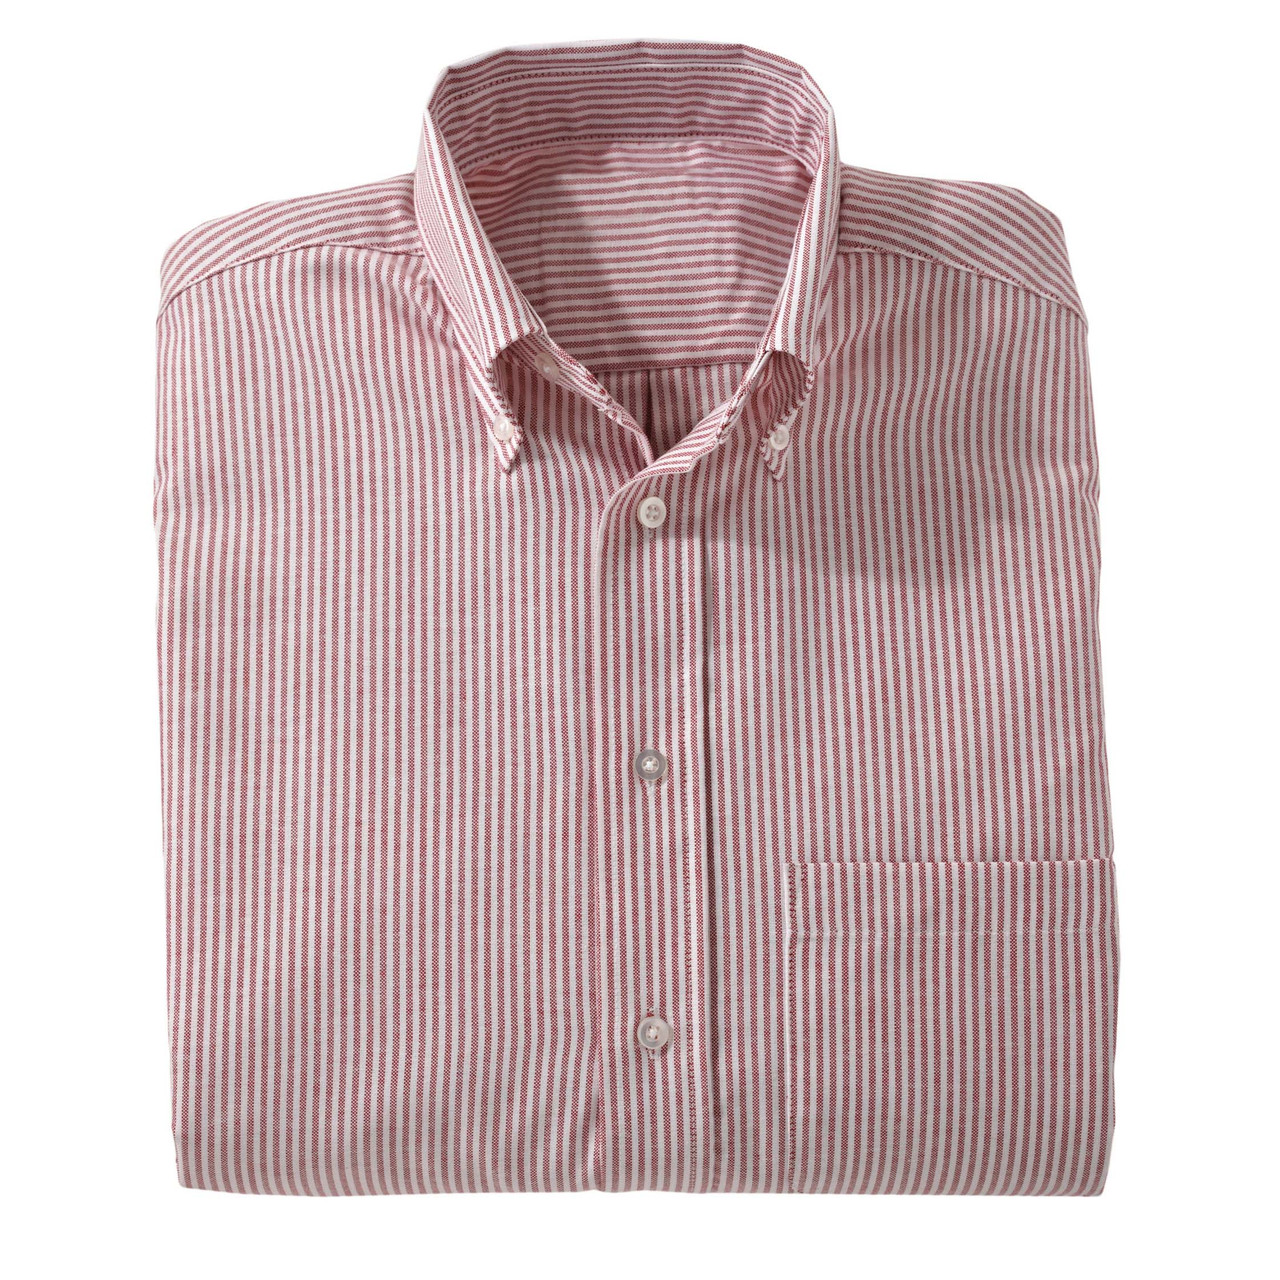 Women's Short Sleeve Easy Care Oxford